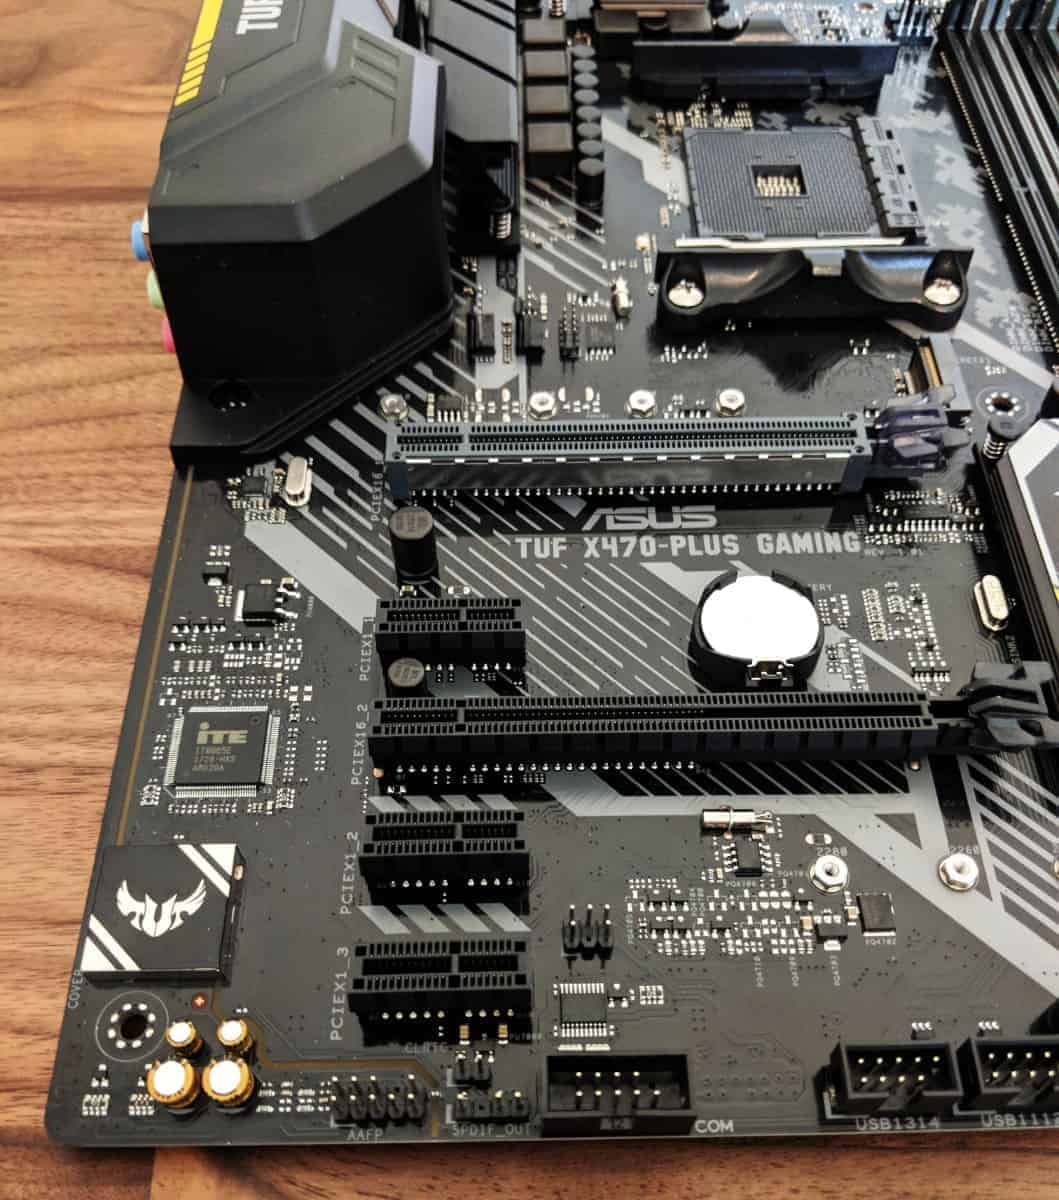 asus-tuf-x470plus-Photos-11 ASUS TUF X470-Plus Gaming Review